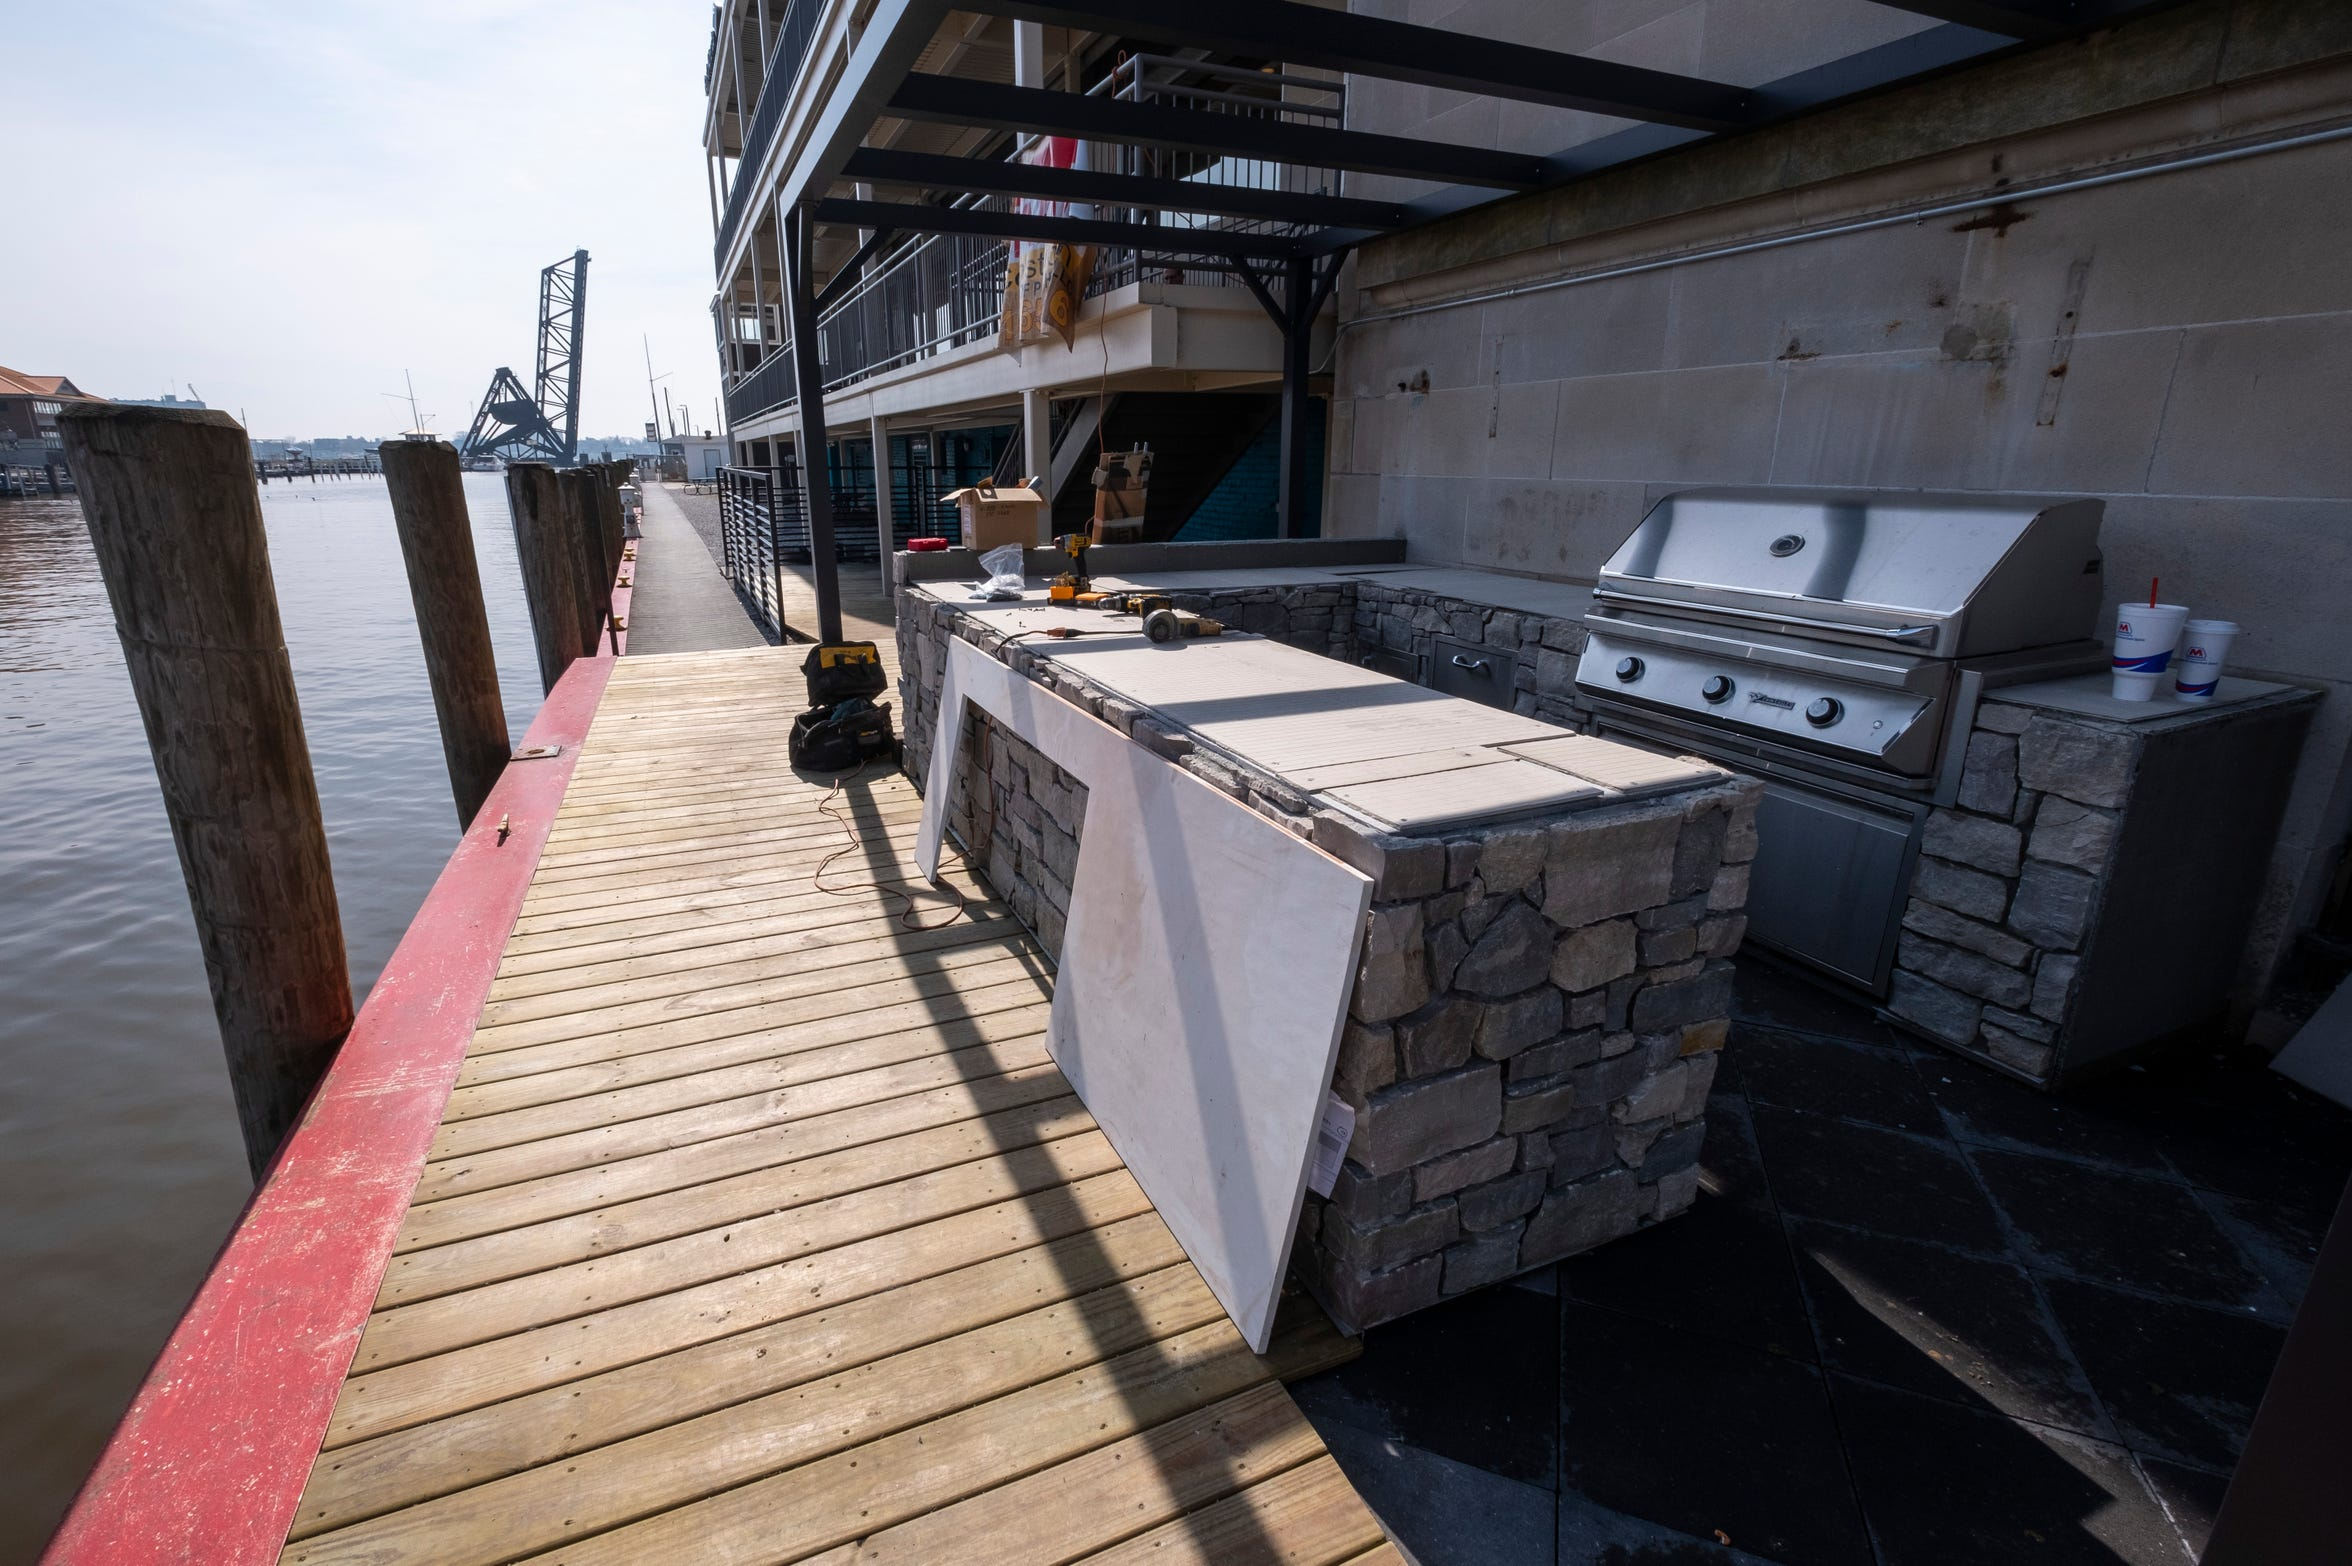 Construction is progressing on Fairweather Grill on the deck outside CityFlats Hotel. It is expected to start being open Memorial Day weekend, and will remain open on days with good weather.